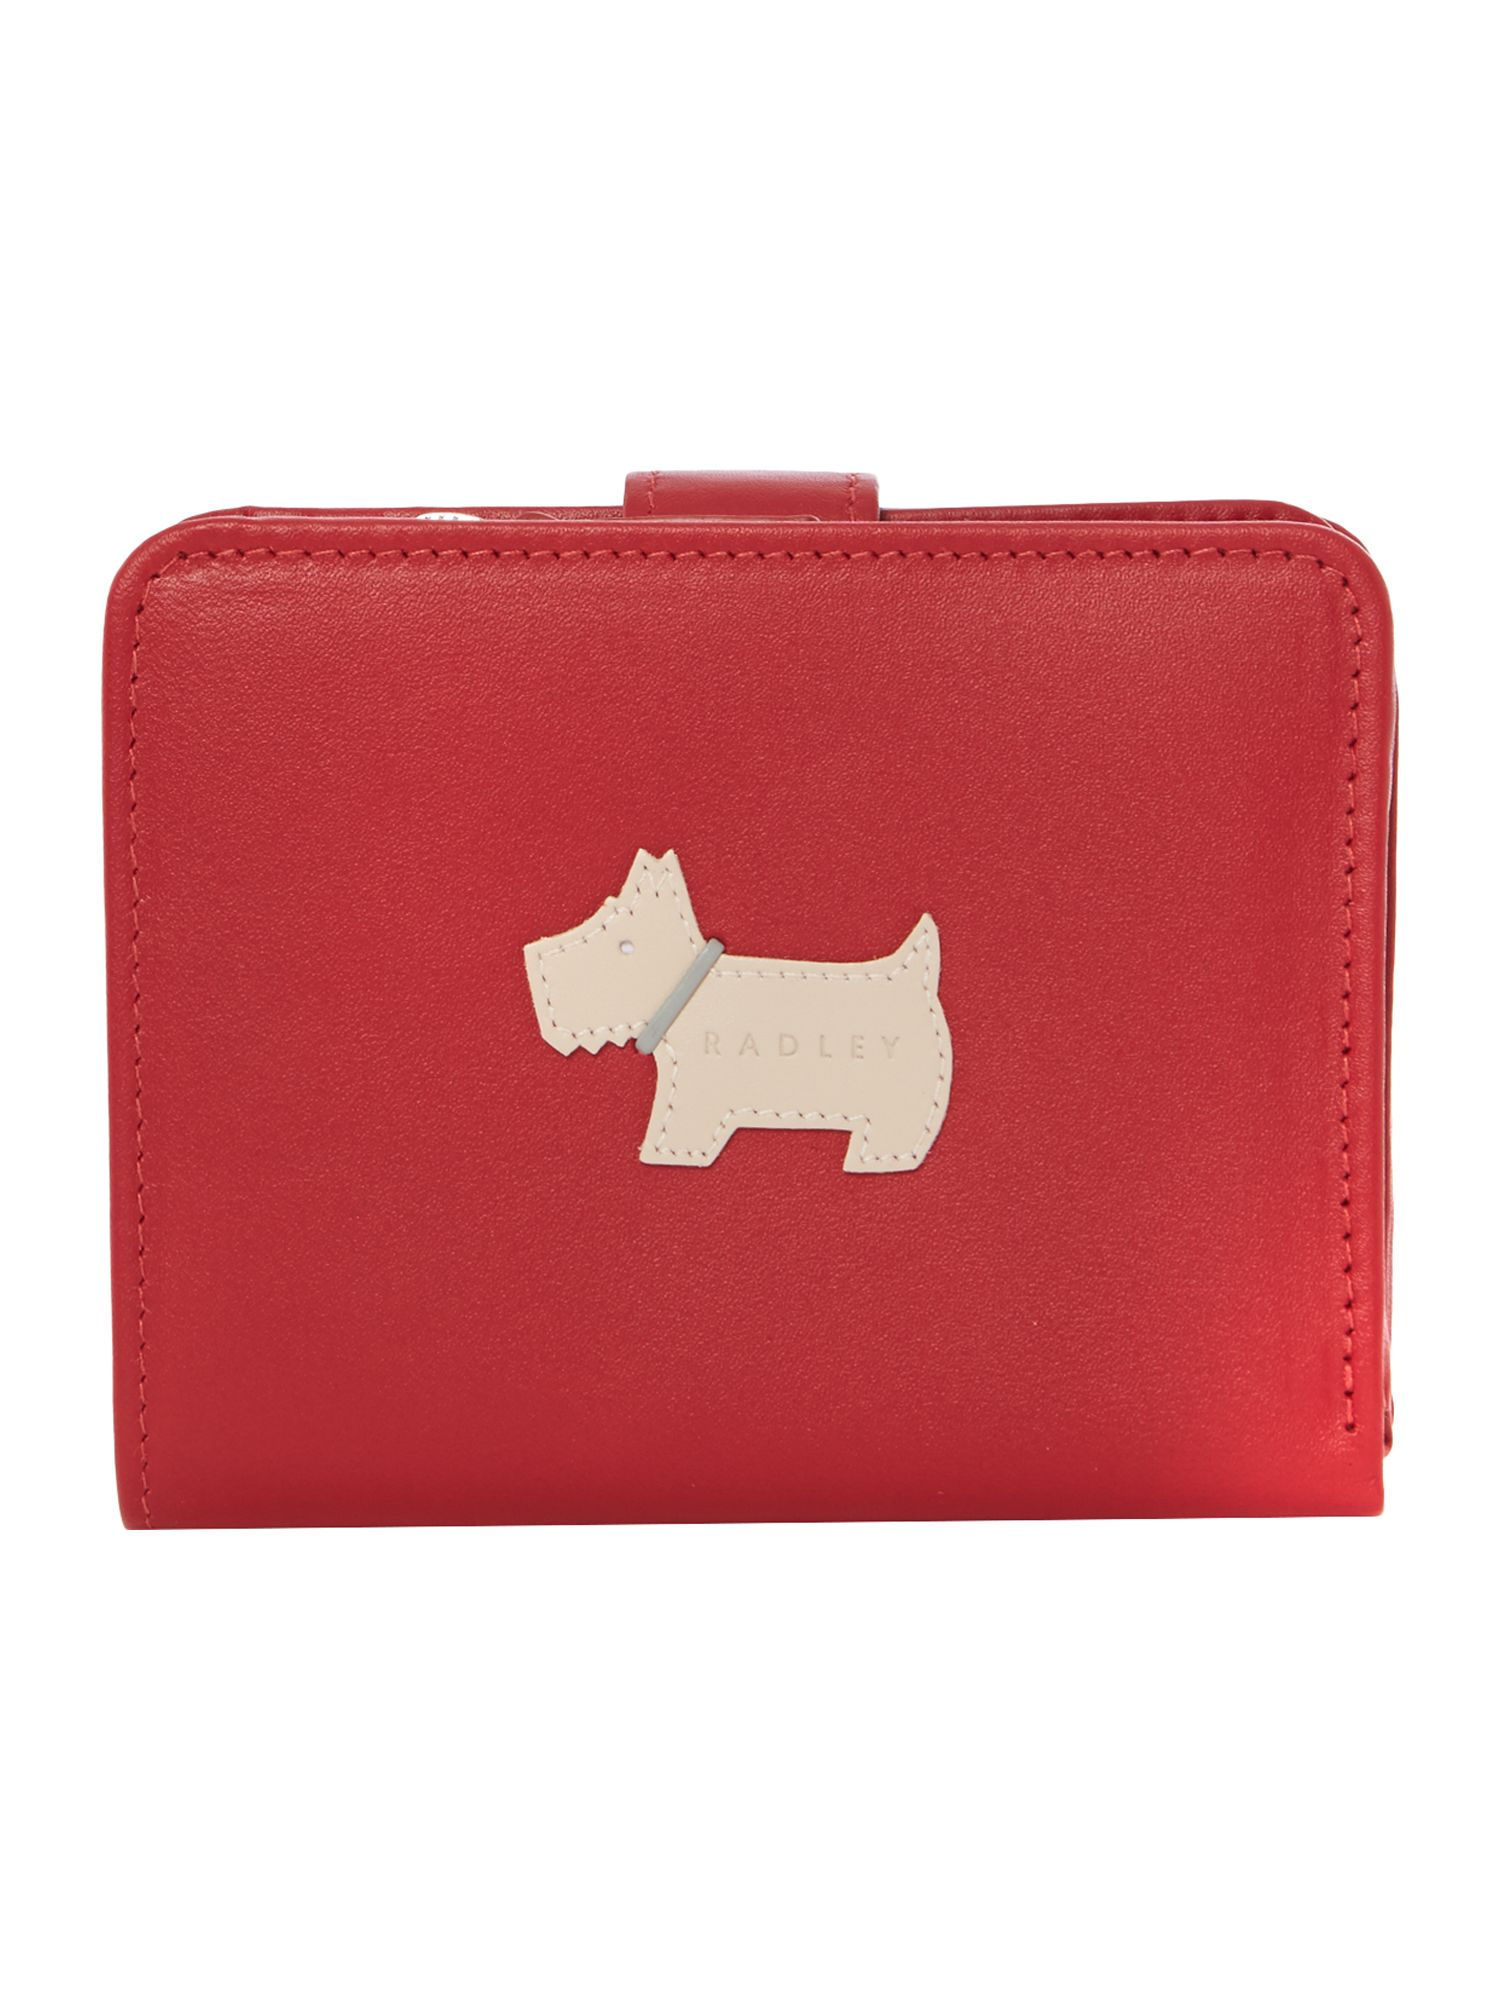 Heritage dog red medium zip around purse